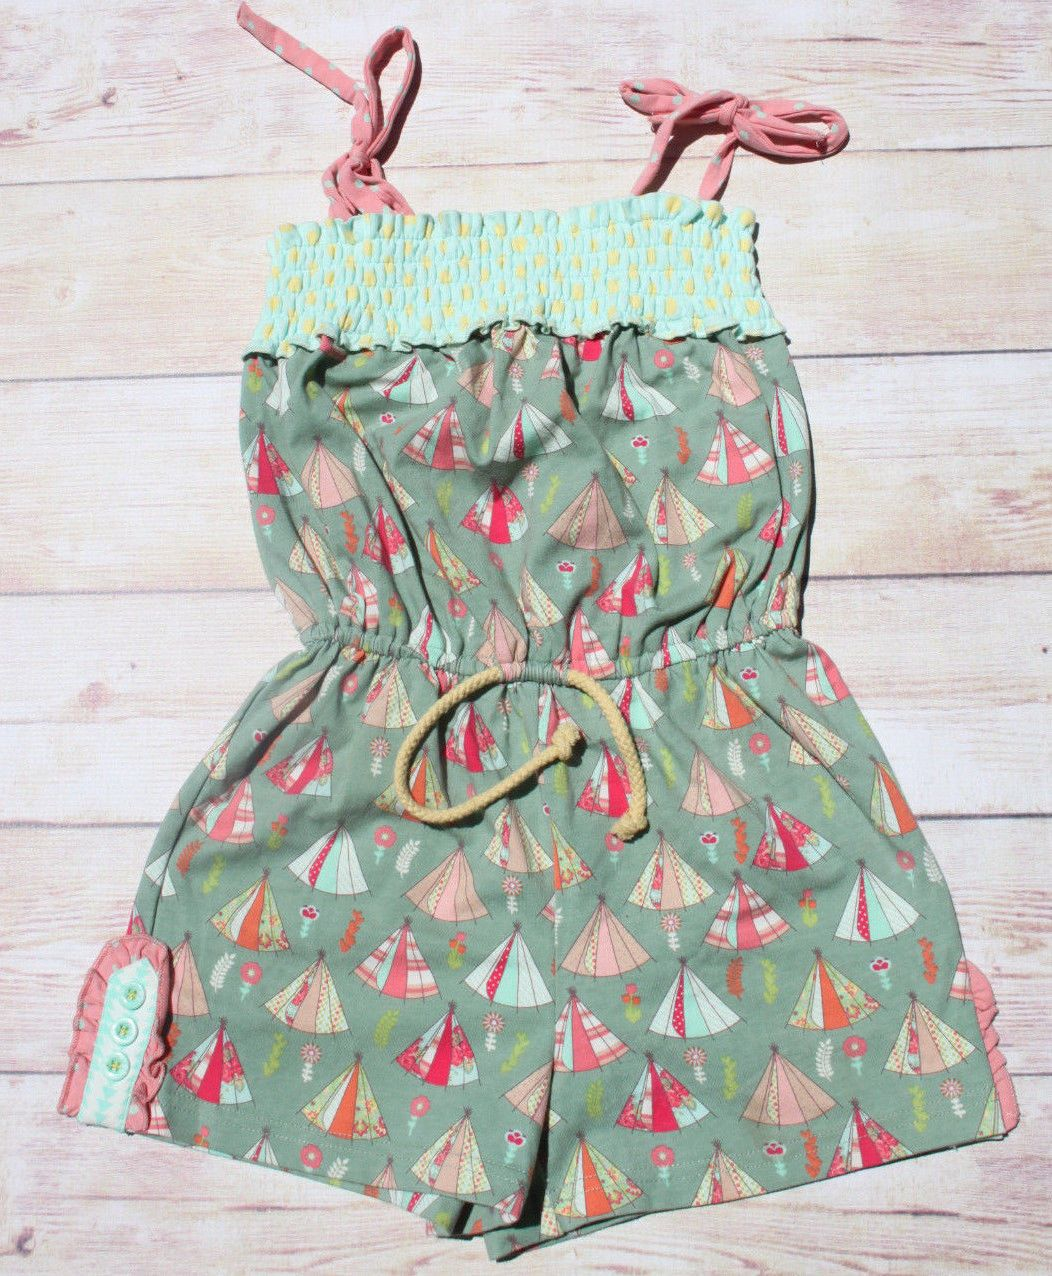 30891ac8383a Jumpsuits and Rompers 175528  Matilda Jane Campfire Stories Romper 4 Nwt  Sold Out Happy And Free Tent Teepee 5 -  BUY IT NOW ONLY   39.95 on eBay!